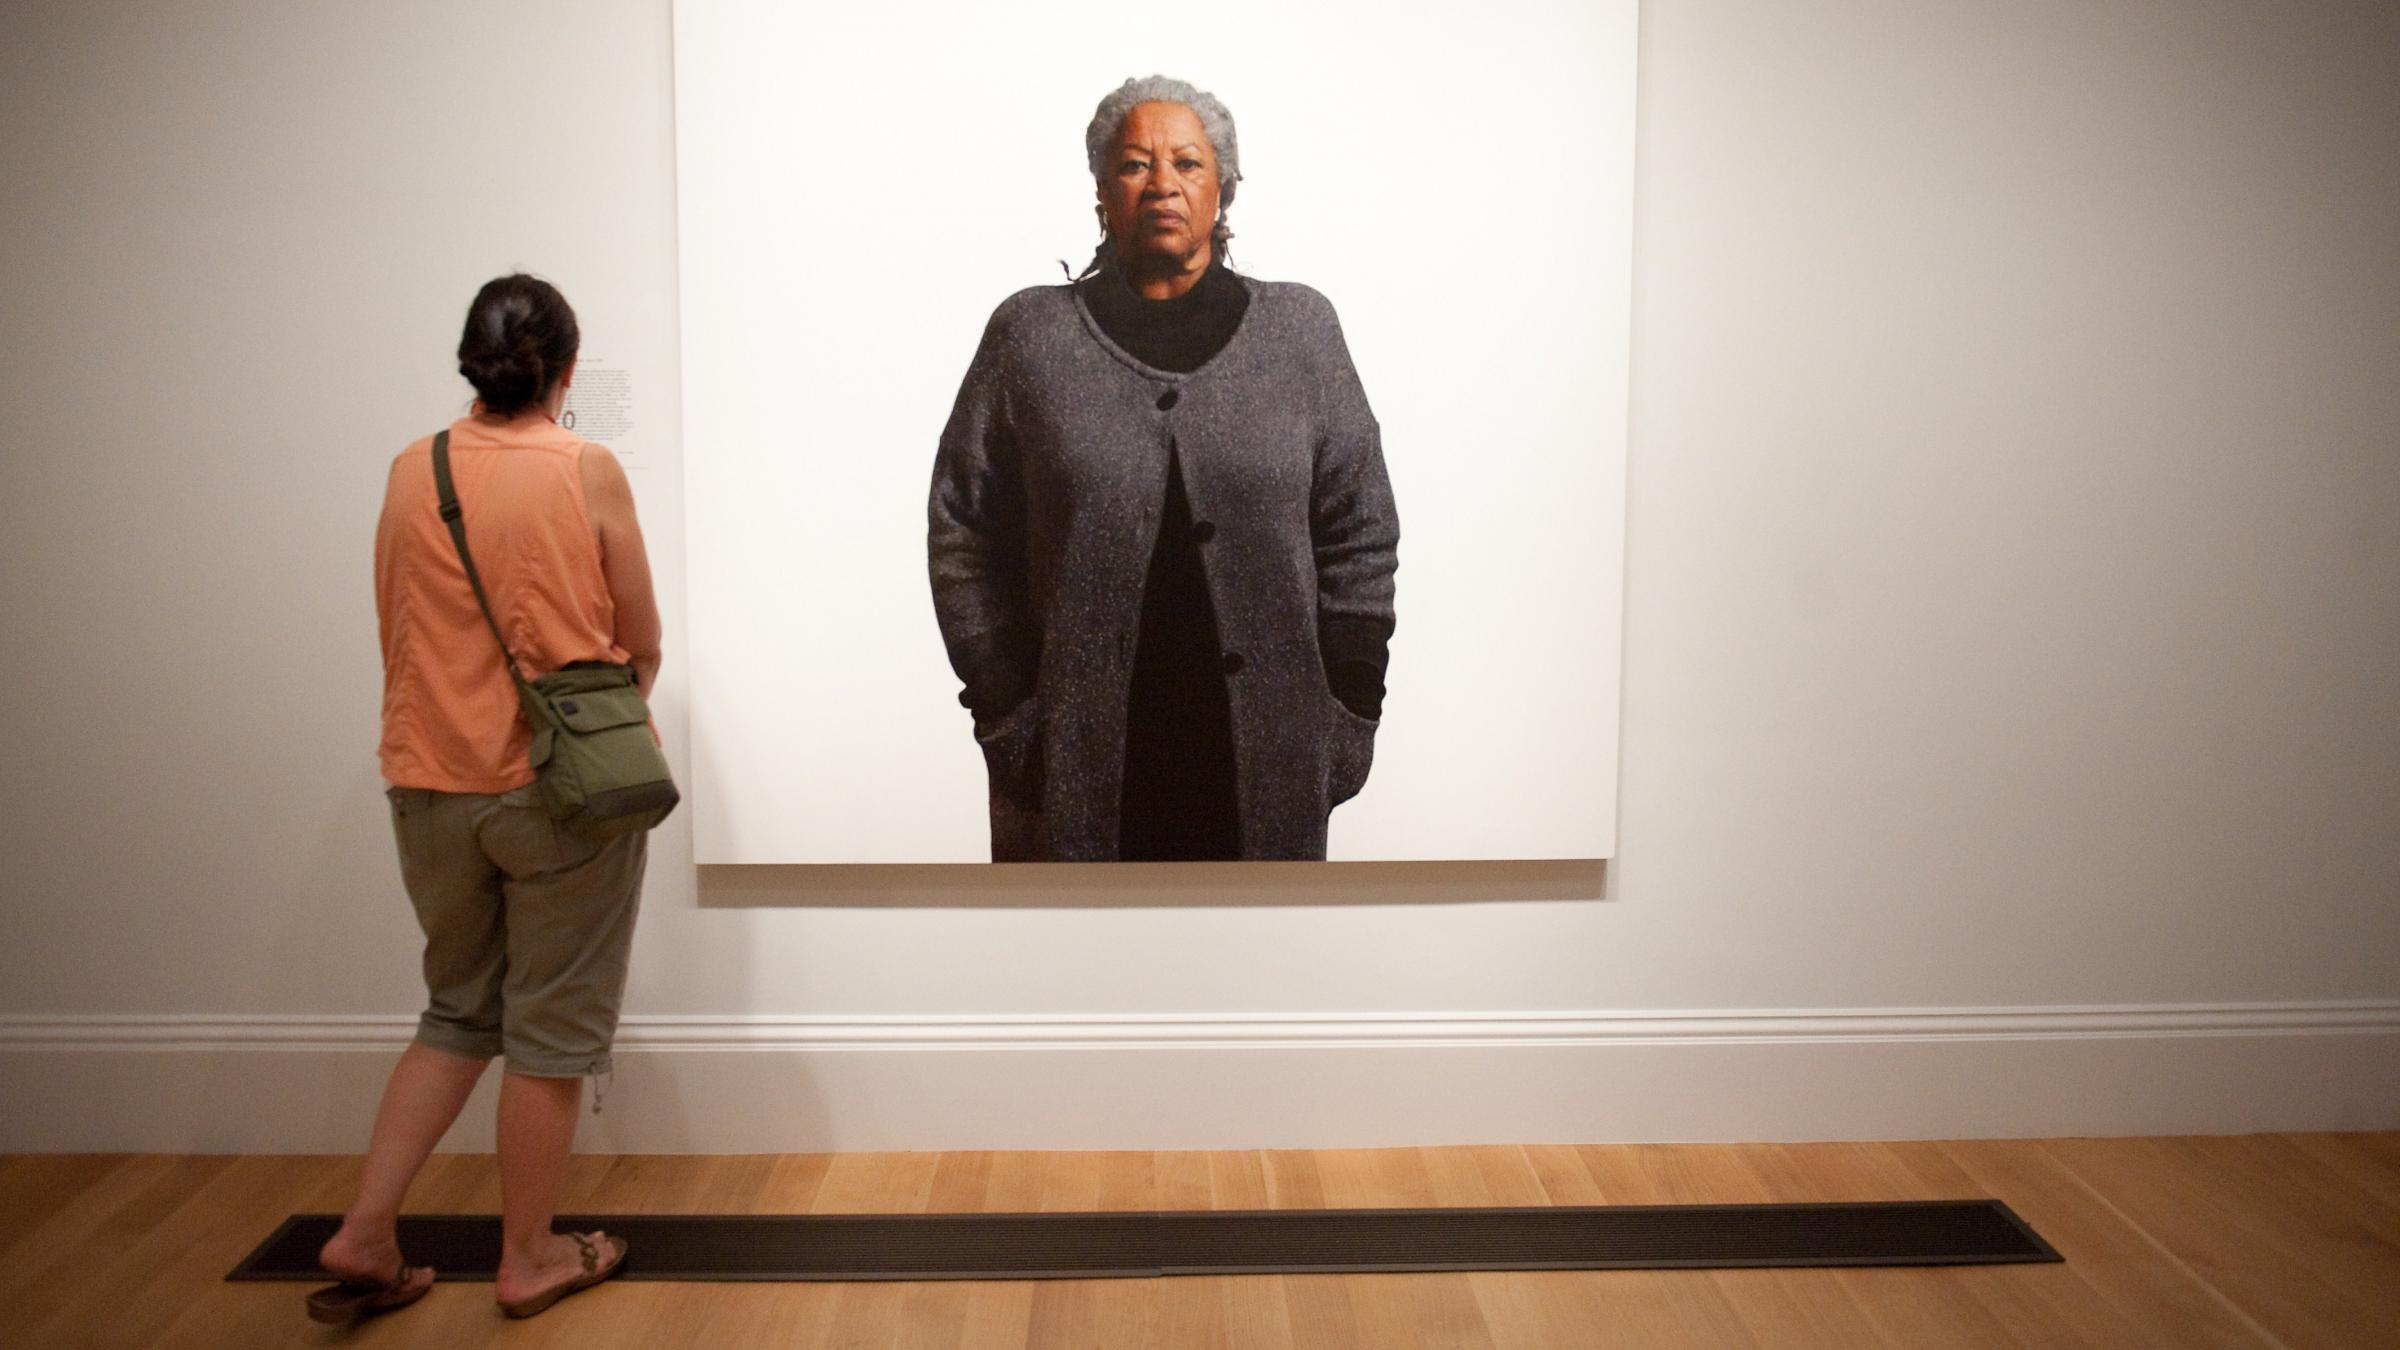 """black matters toni morrison essay Very nice article 34 votes """" the black arts movement, black aesthetics movement or bam is toni morrison black matters essay the artistic outgrowth of the black."""